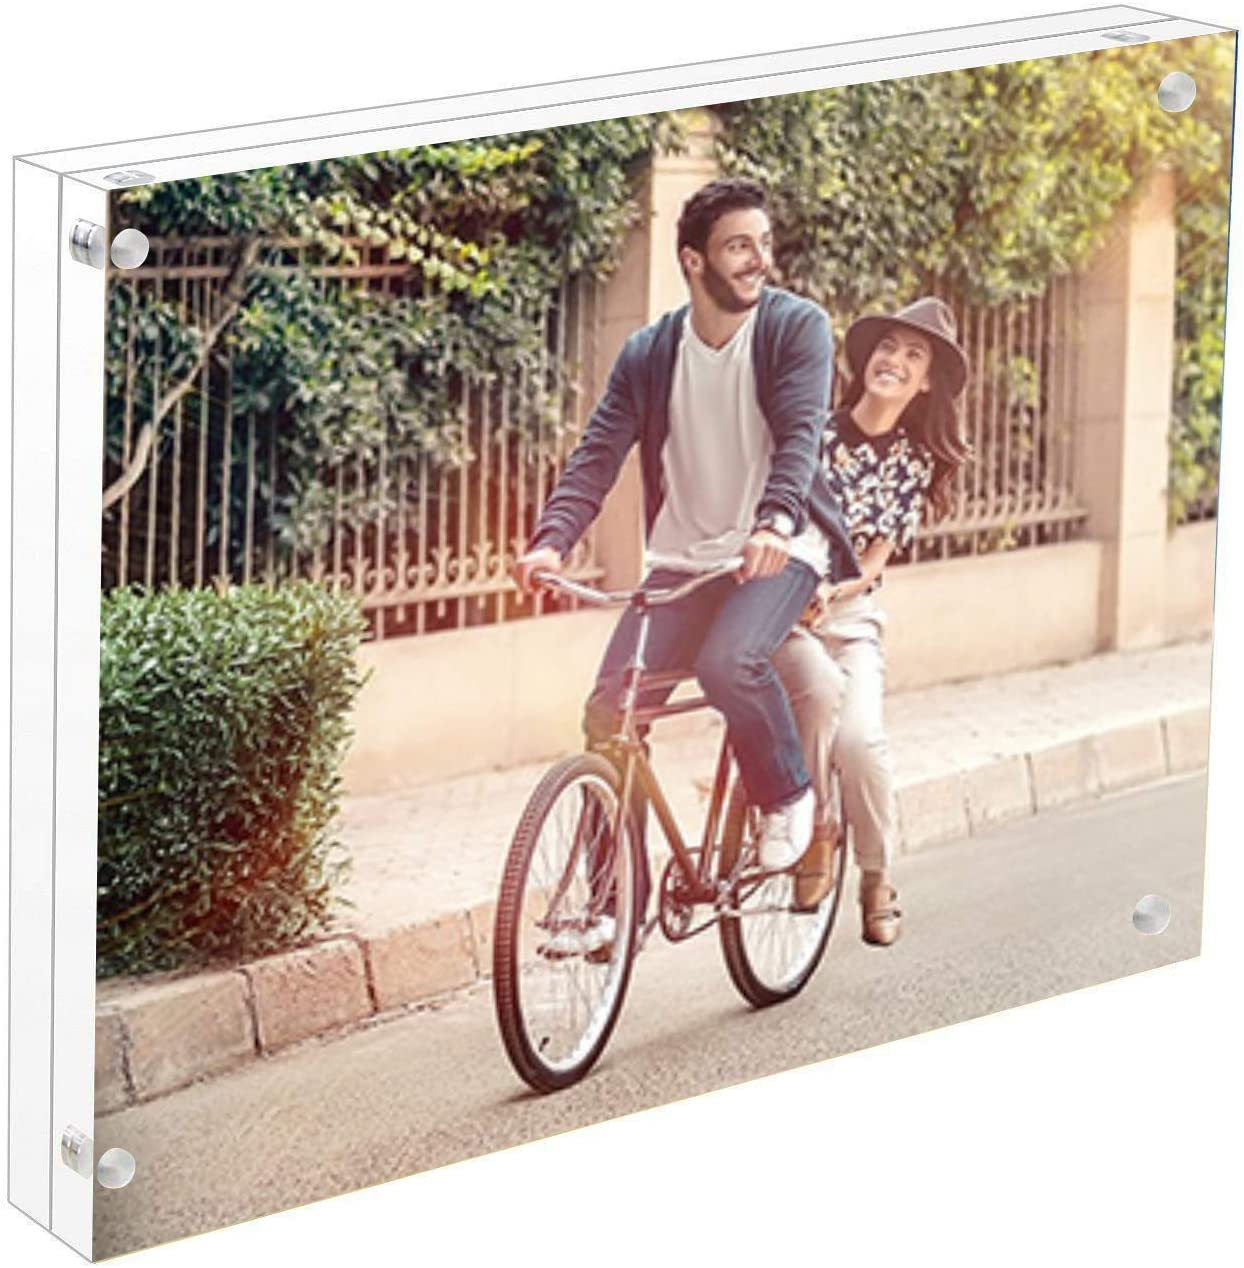 Cq acrylic 8x10 Inch Acrylic Magnetic Picture Frame,Clear 10 + 10MM Thickness Stand in Desk/Table,Pack of 1